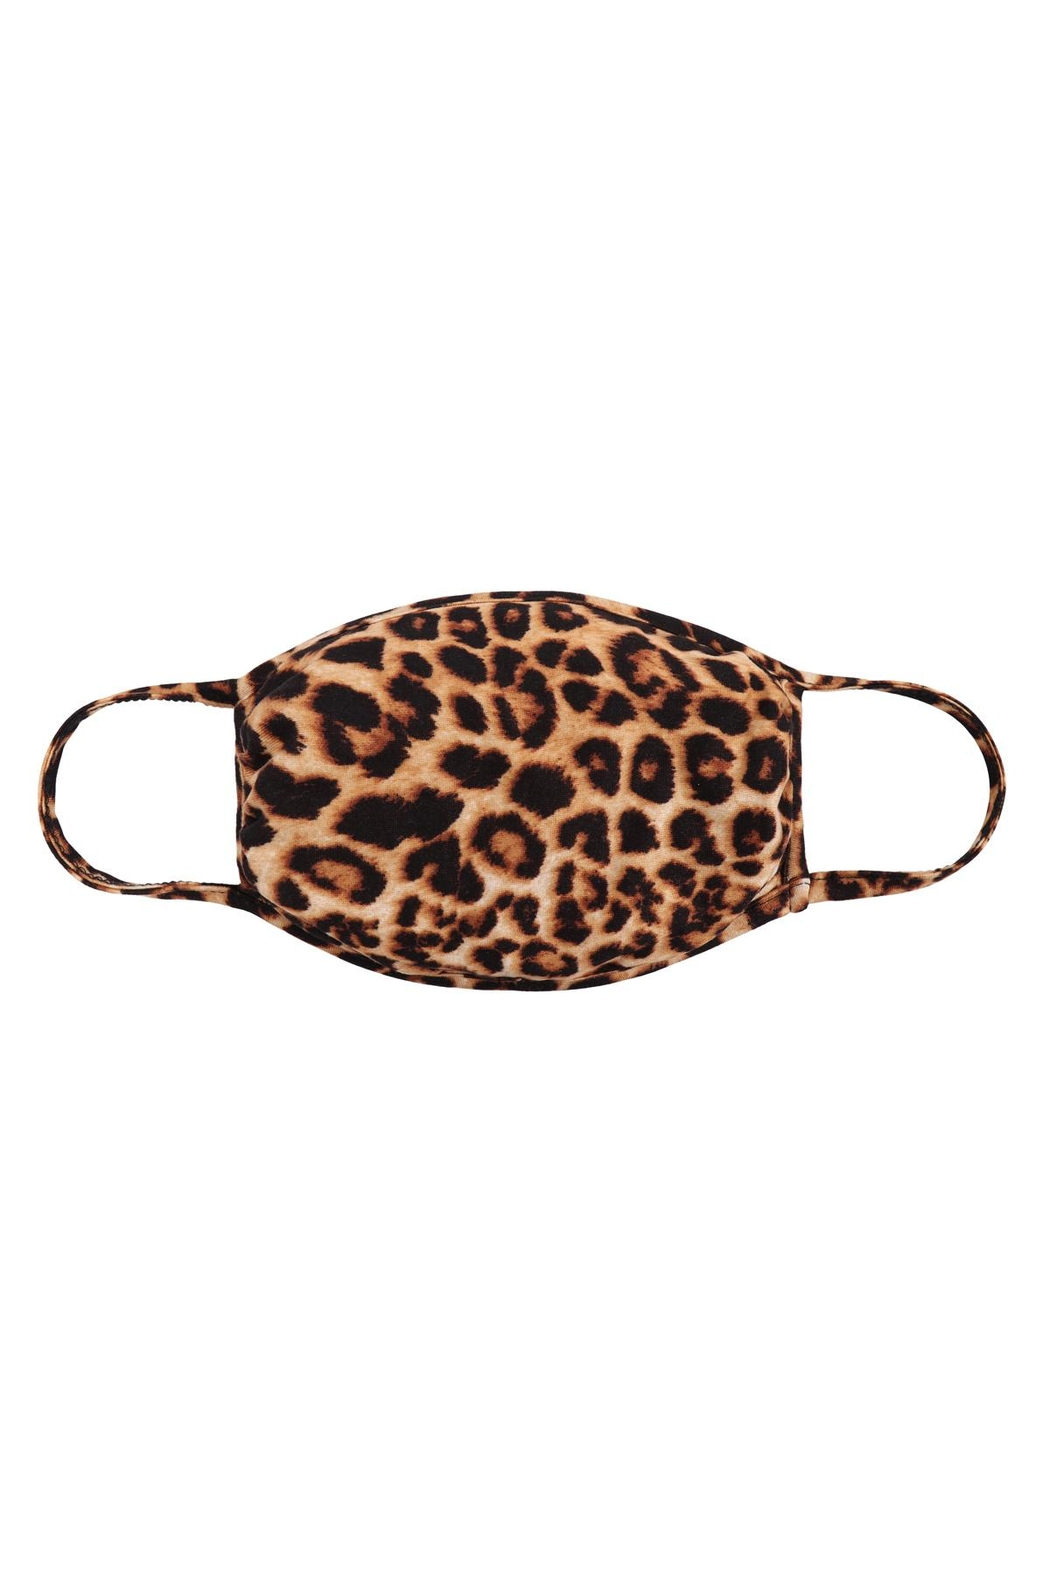 Riah Fashion Leopard-Print-Reusable-Face-Mask-For-Adults - Main Image